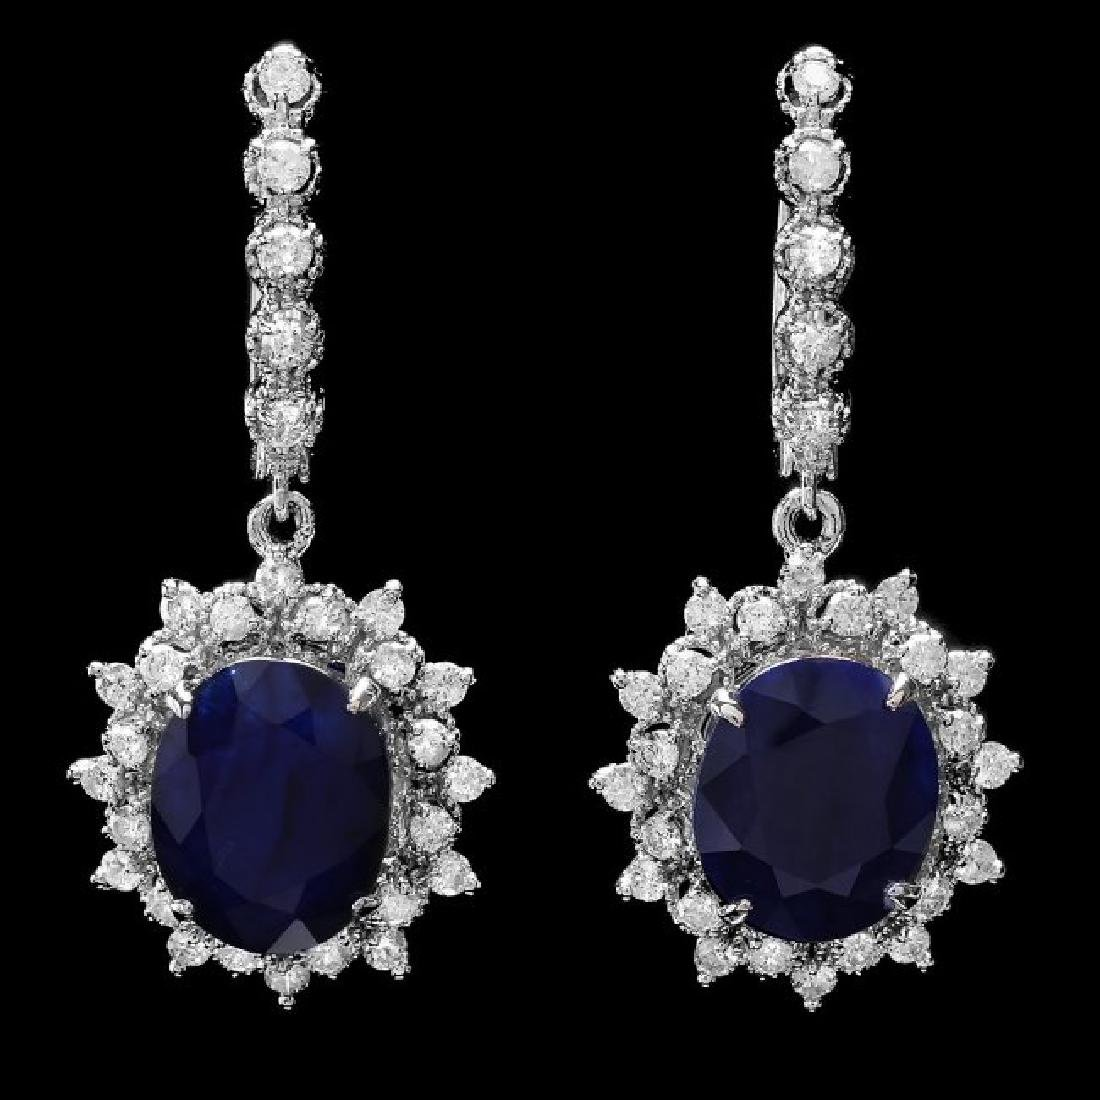 14k Gold 12ct Sapphire 1.70ct Diamond Earrings